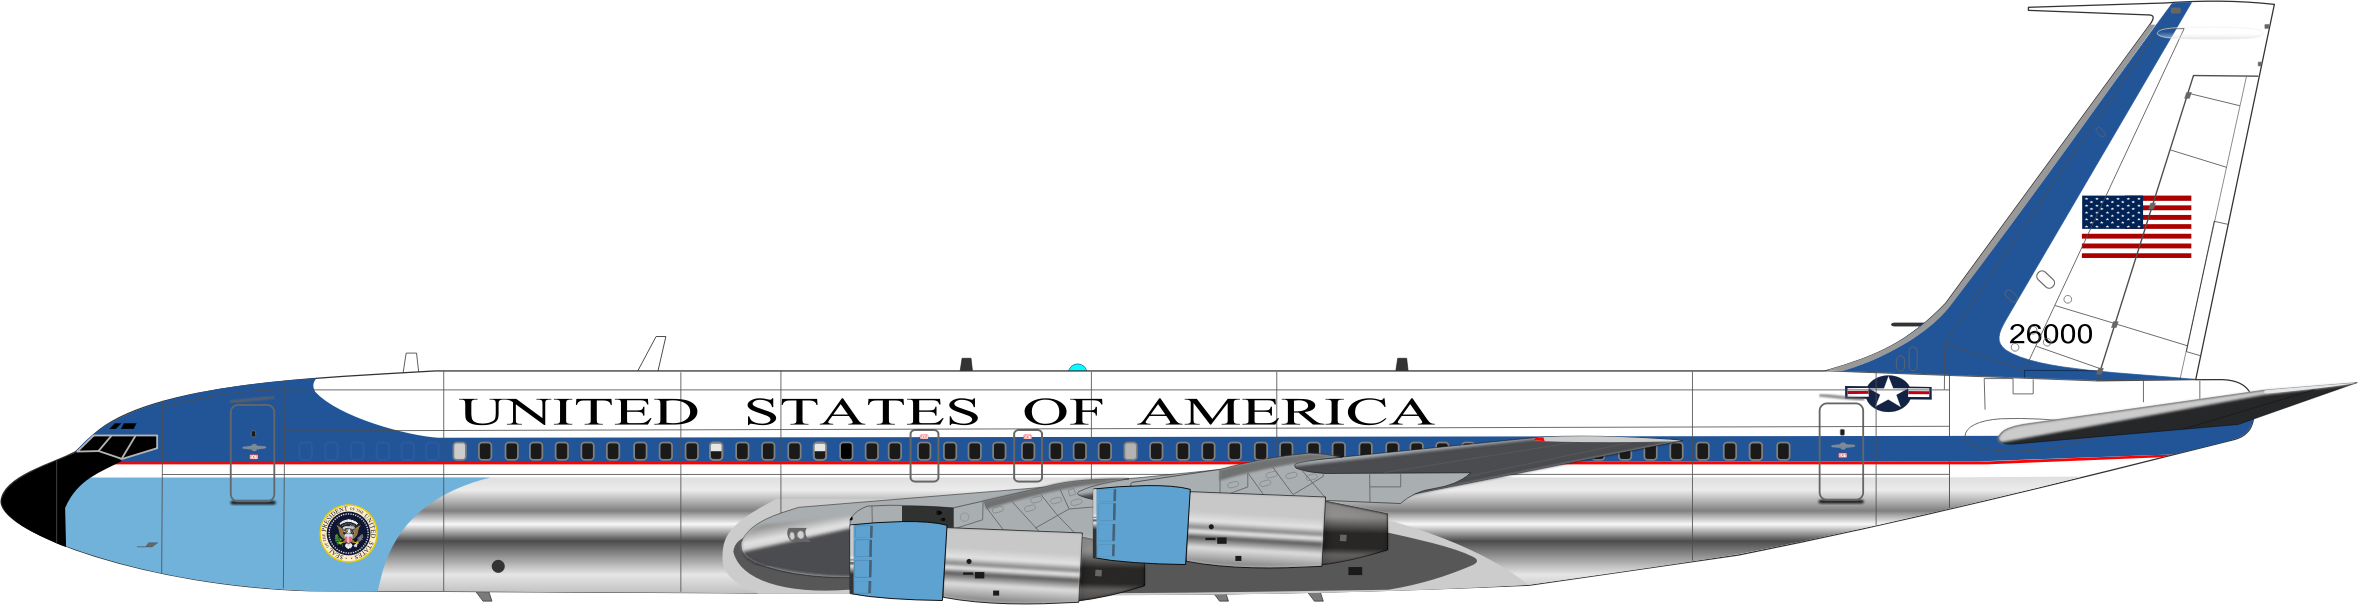 Air force one icons. Jet clipart commercial airplane